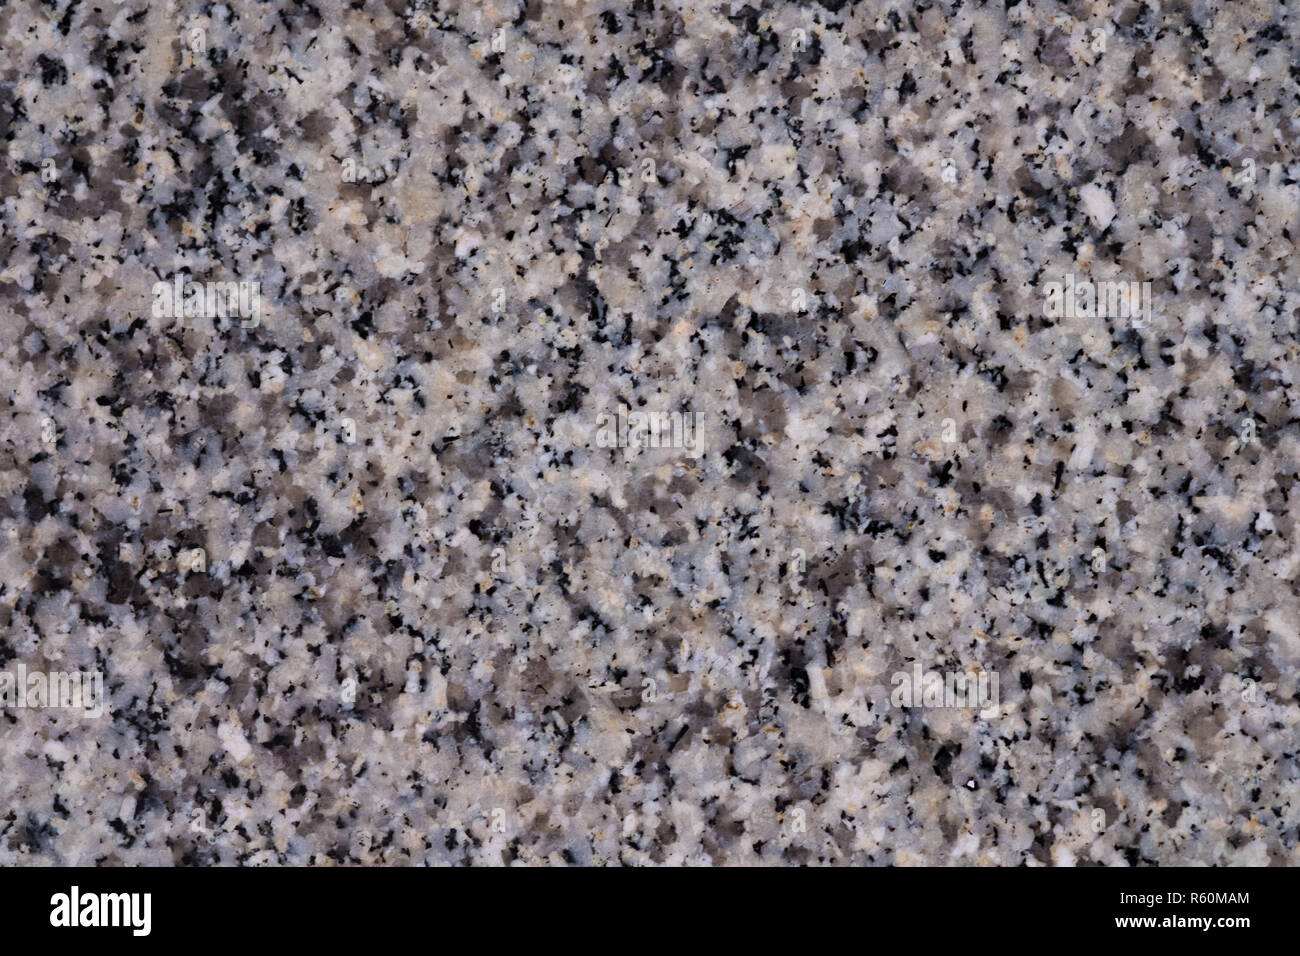 Dark Grey Marble Natural Texture Floor And Wall Pattern And Color Surface Marble And Granite Stone Material For Decoration Background Texture Interi Stock Photo Alamy